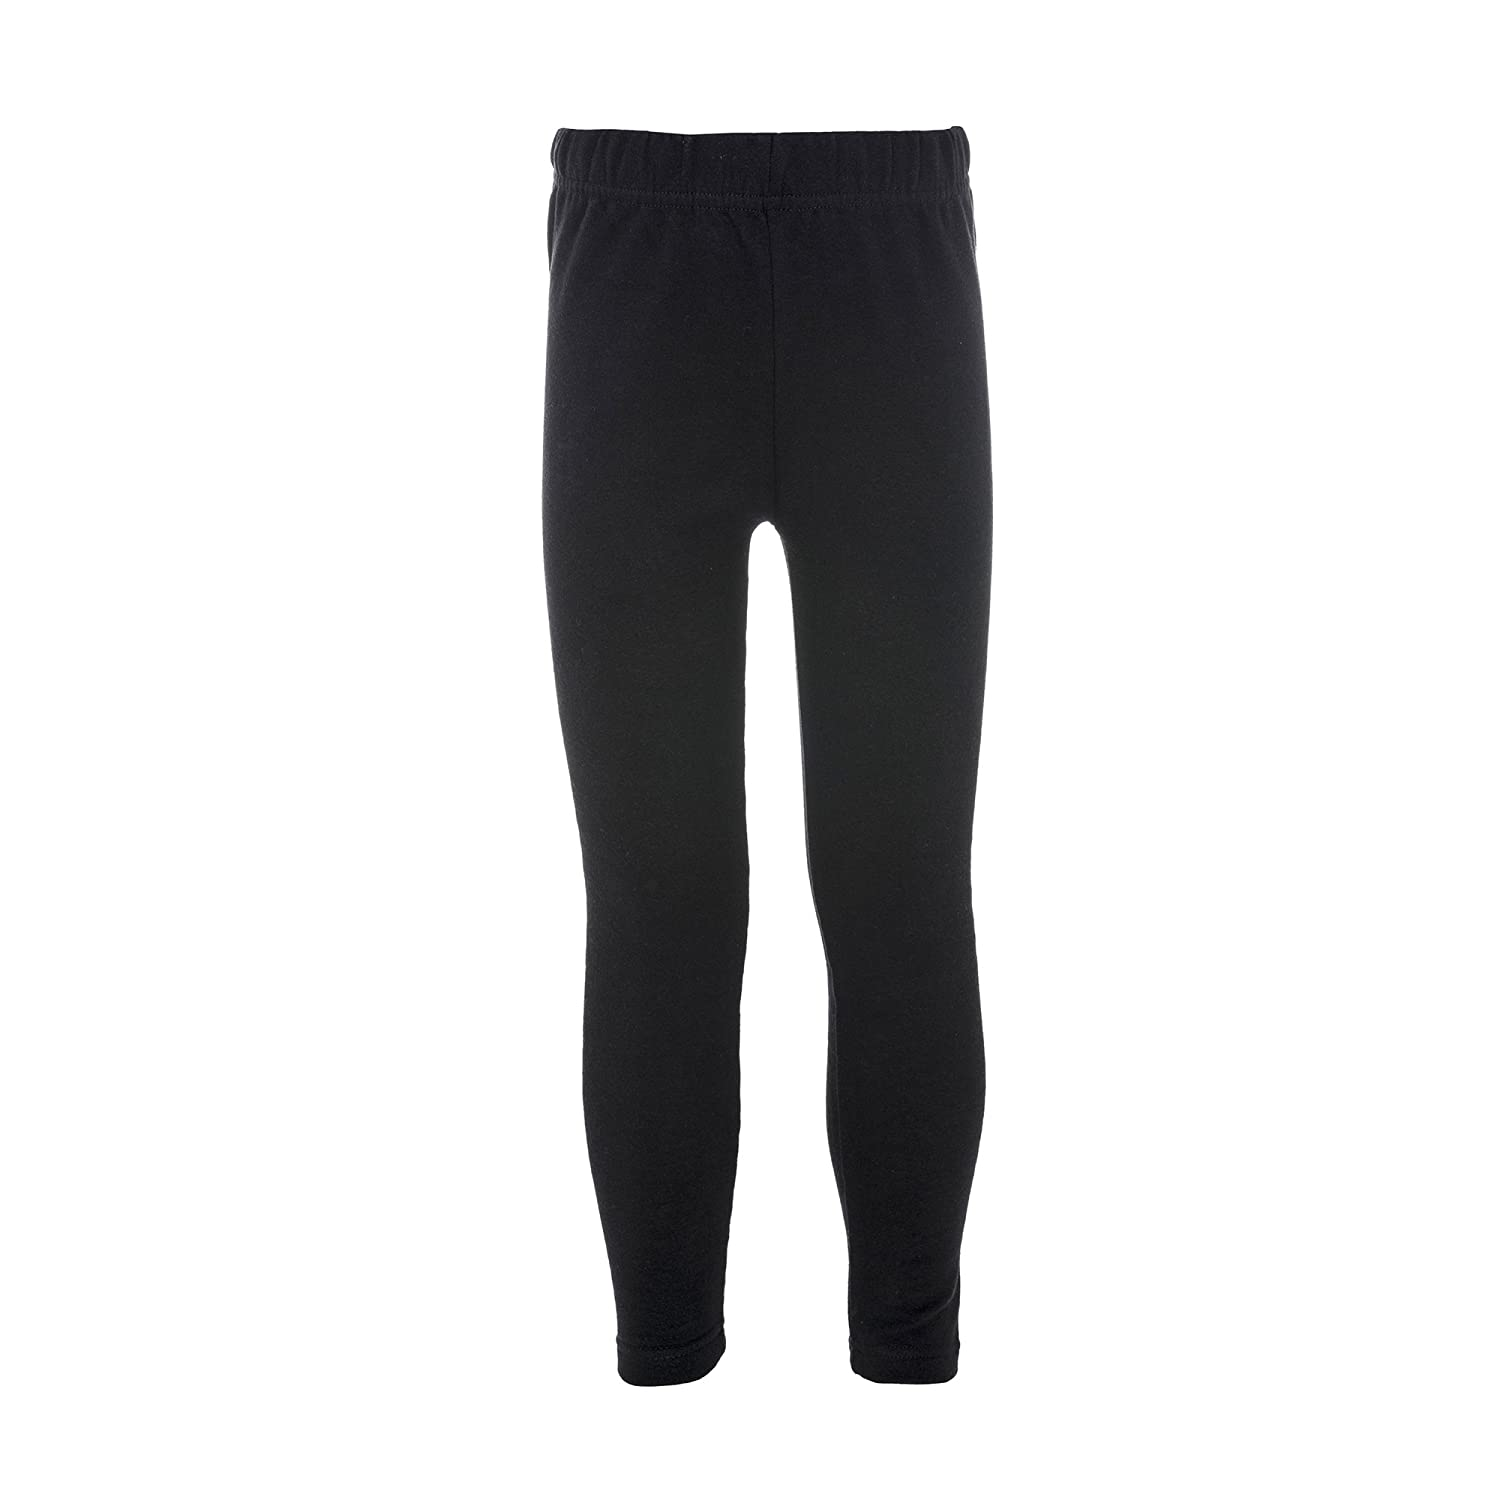 1626ed5dee506a Girls Thick Leggings Childrens Thermal Fleece Lined Leggins By Brody & Co®:  Amazon.co.uk: Clothing